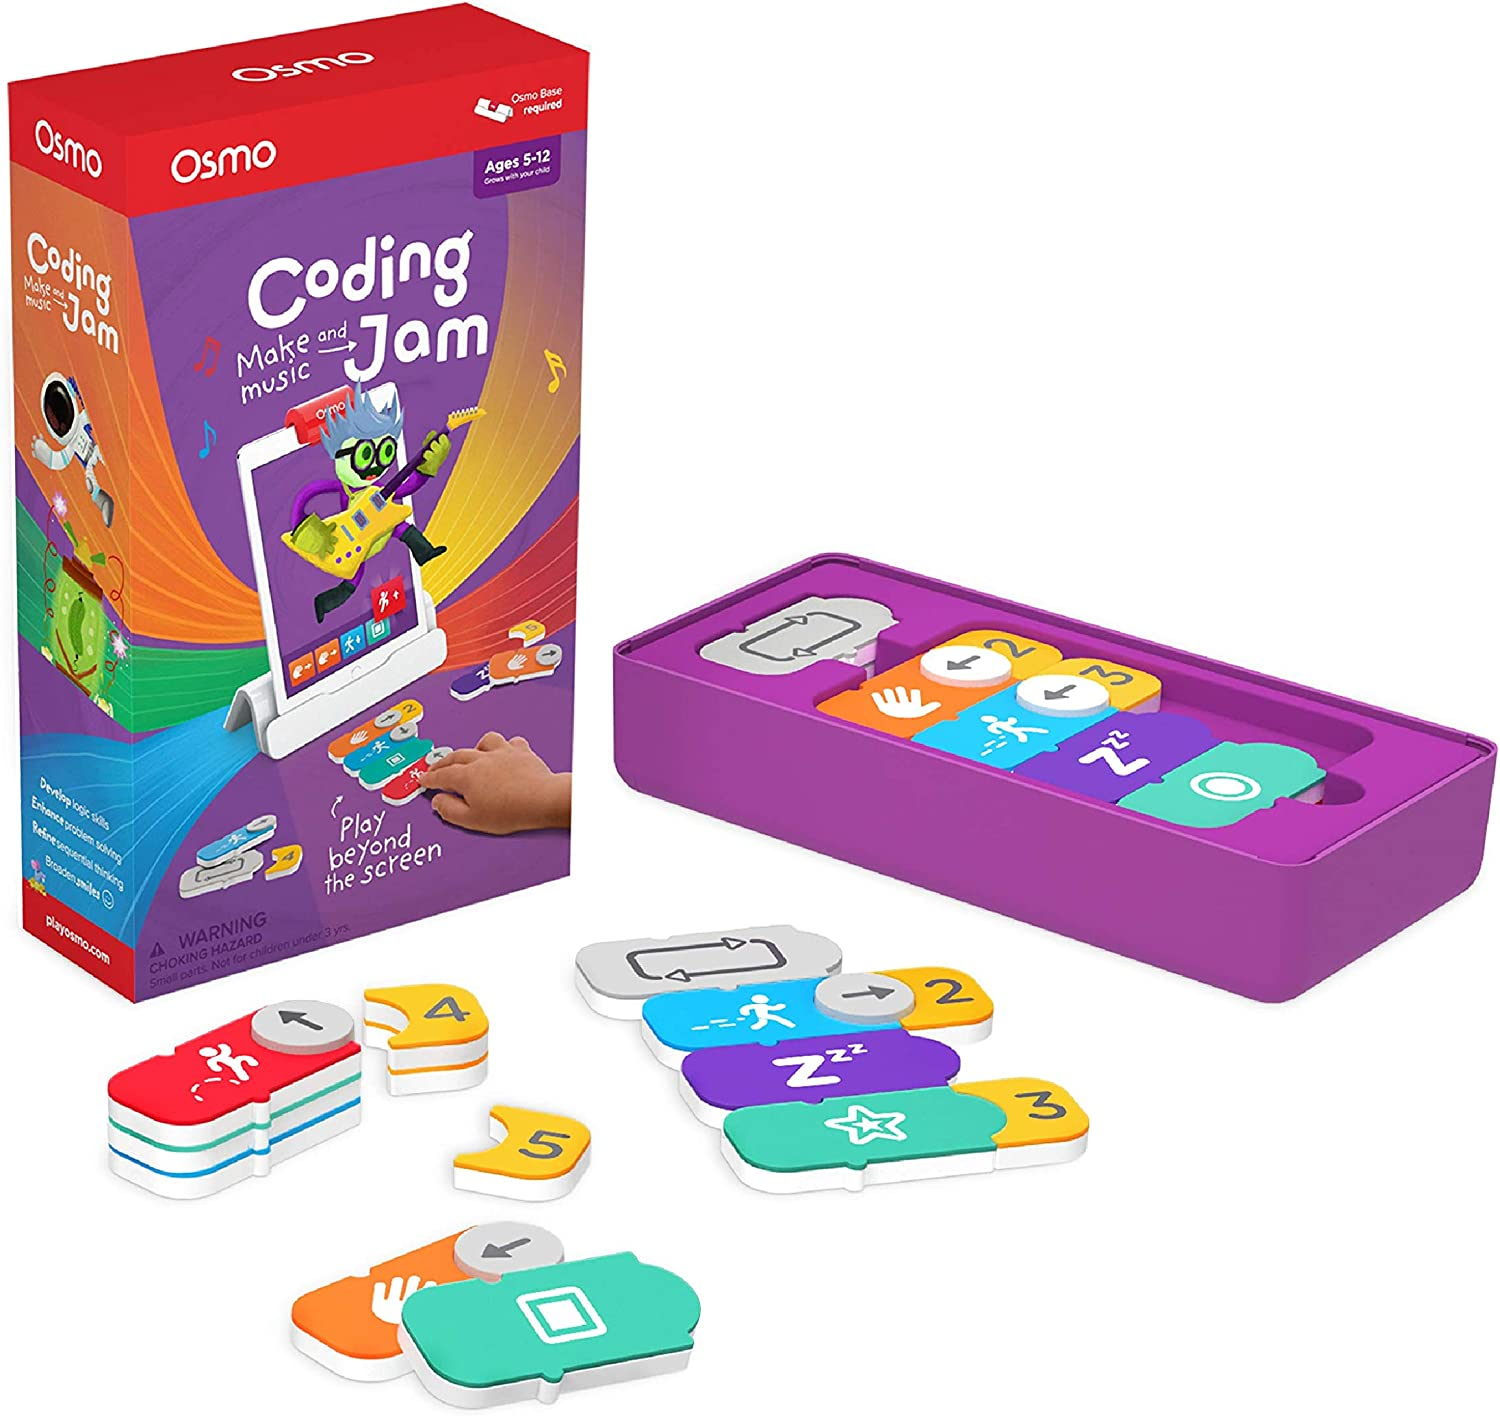 Osmo - Coding Jam - Ages 6-12 - Music Creation, Coding & Problem Solving - For iPad or Fire Tablet (Osmo Base Required)